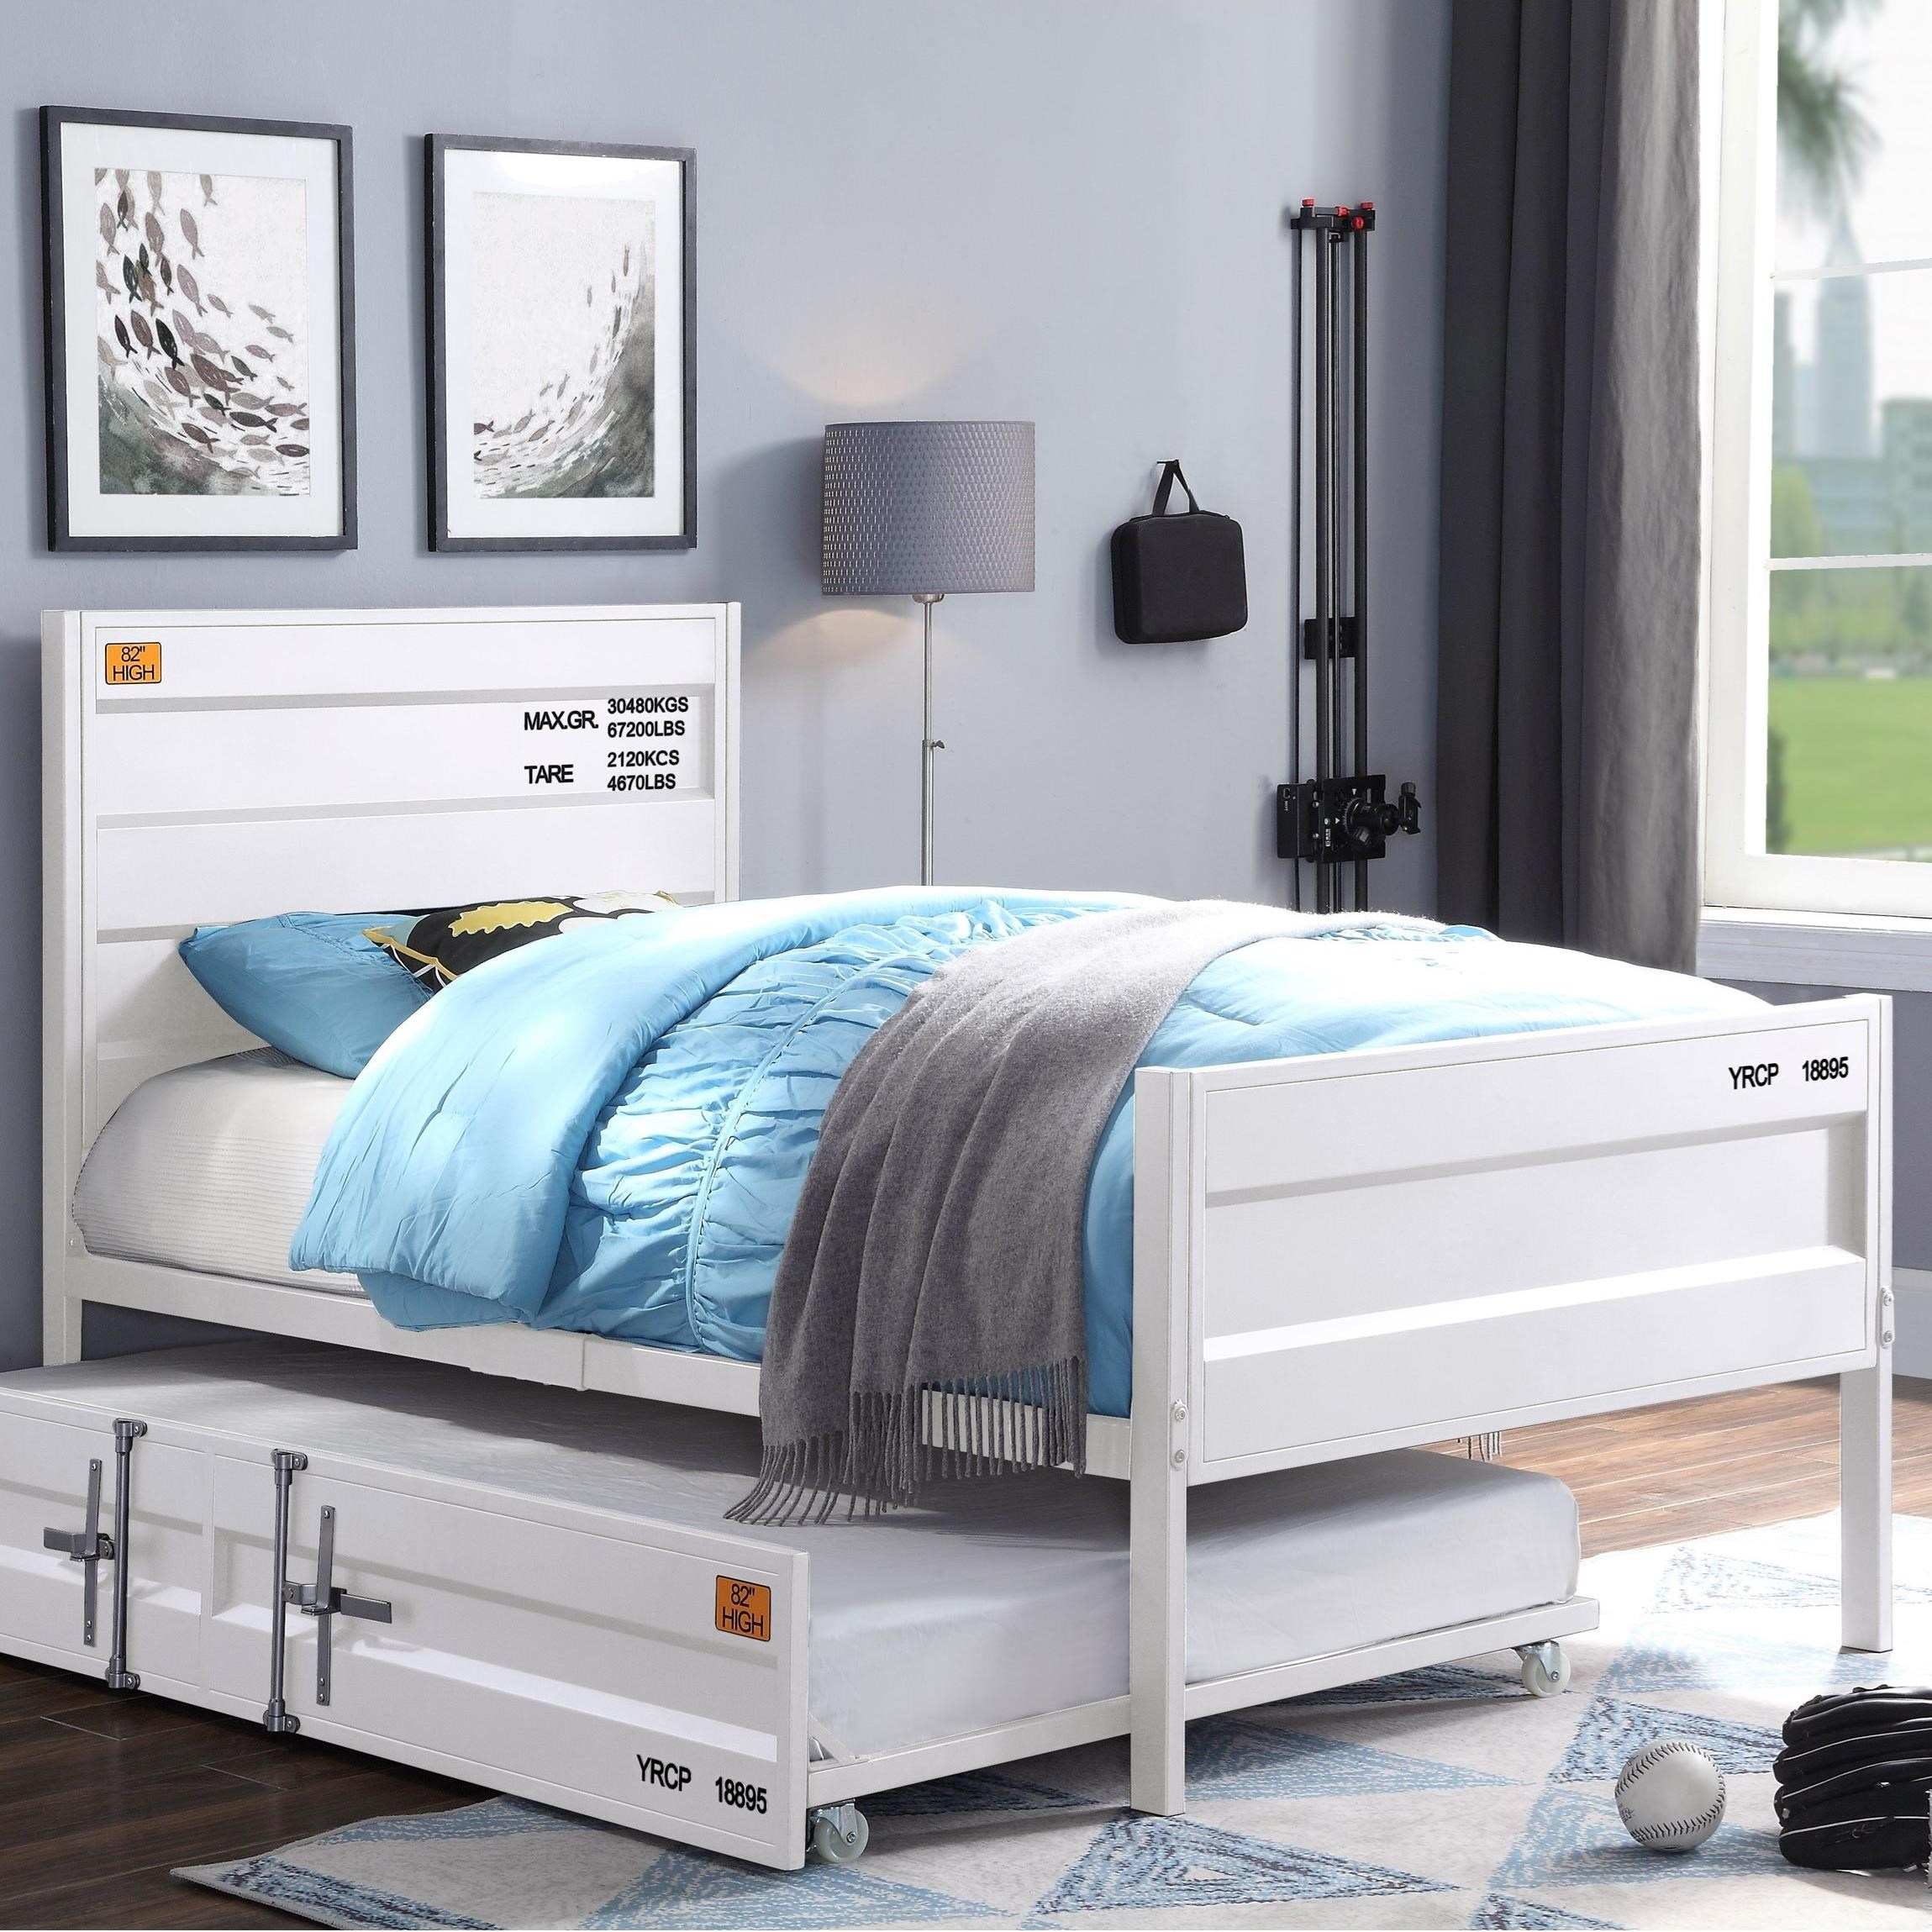 Acme Furniture Cargo 35900t Twin Bed